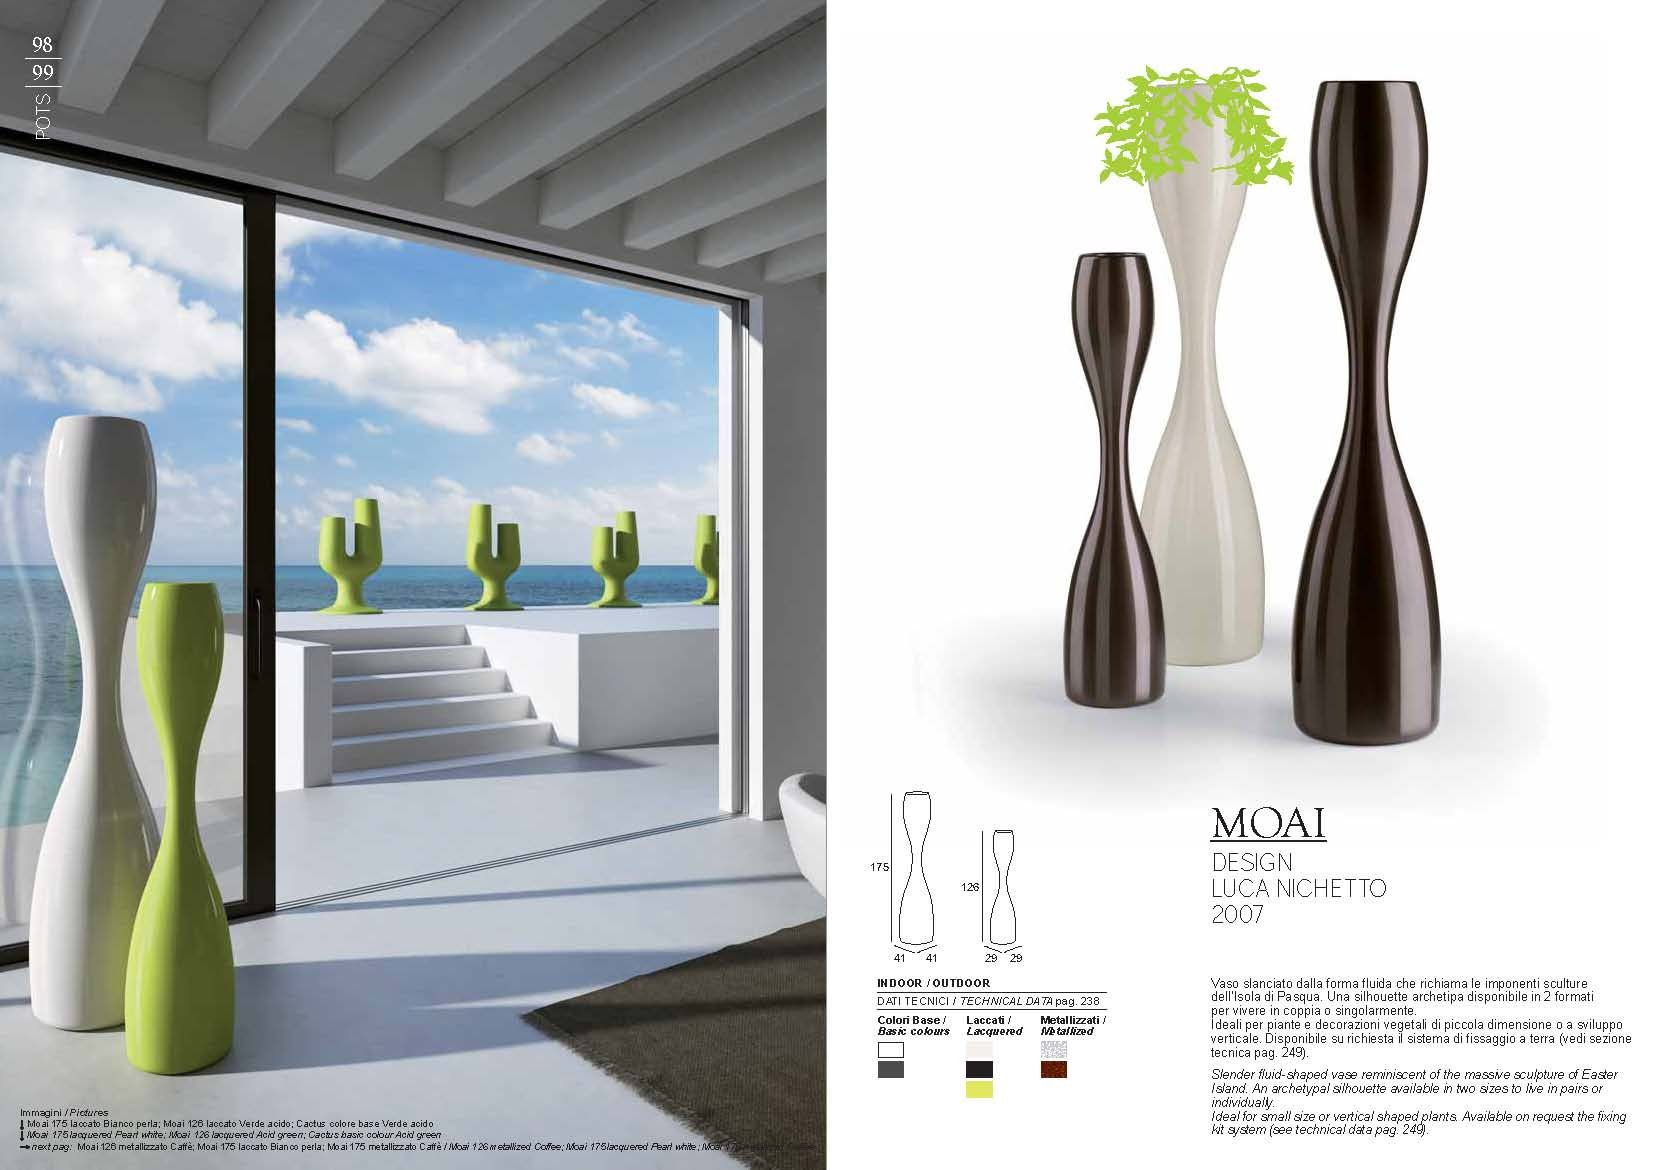 gartenm bel pot plust collection serie moaidie m bel aus italien. Black Bedroom Furniture Sets. Home Design Ideas